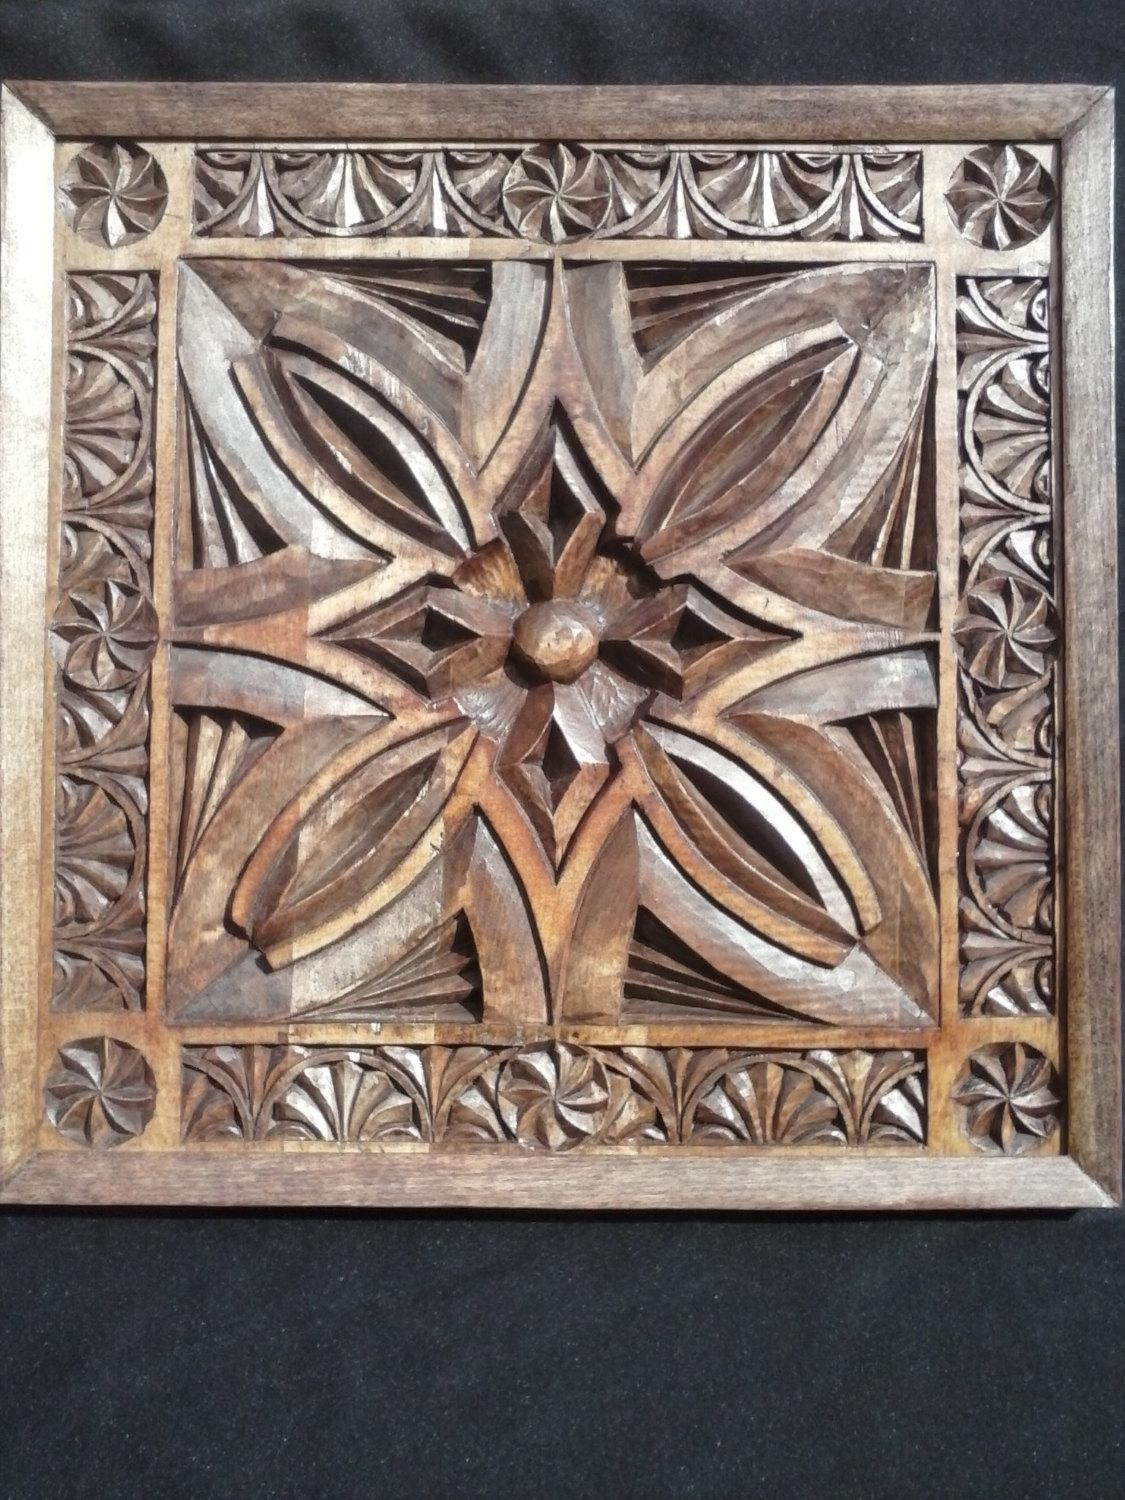 Wood Carving Wall Art Panel Chip Carvedhand In Tulip Wood With Regard To Stained Wood Wall Art (View 17 of 20)